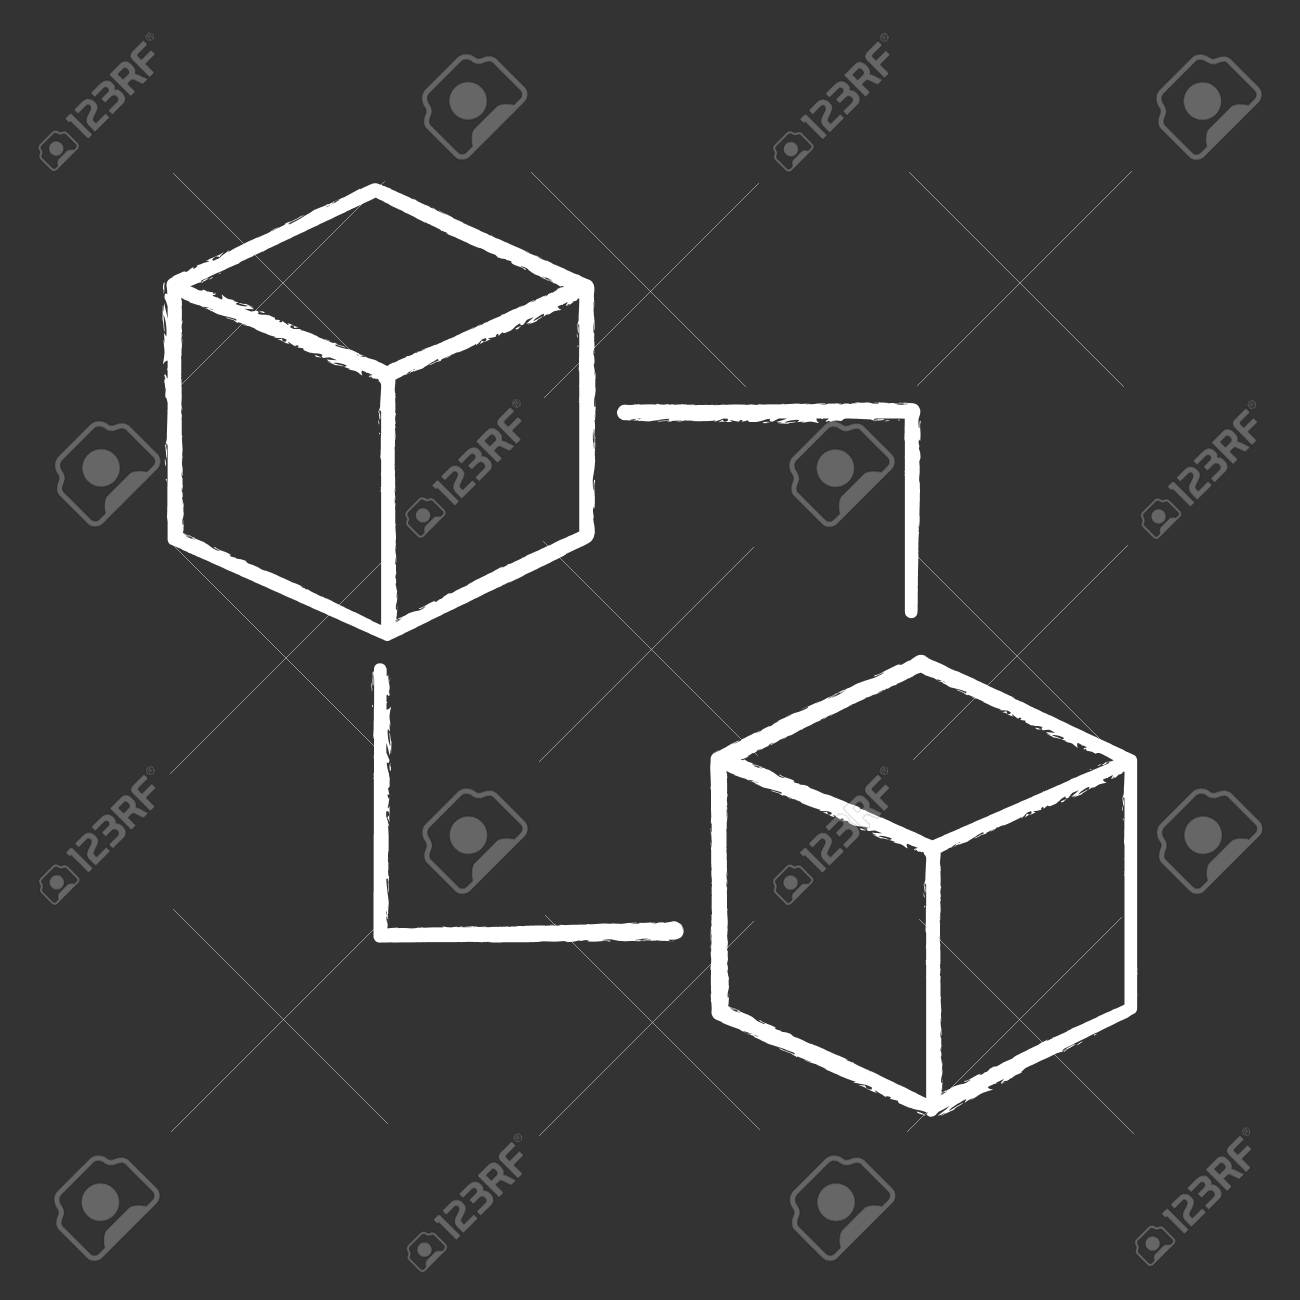 Blockchain Technology Chalk Icon Cryptocurrency Fintech E Commerce Block Diagram Connected Cubes